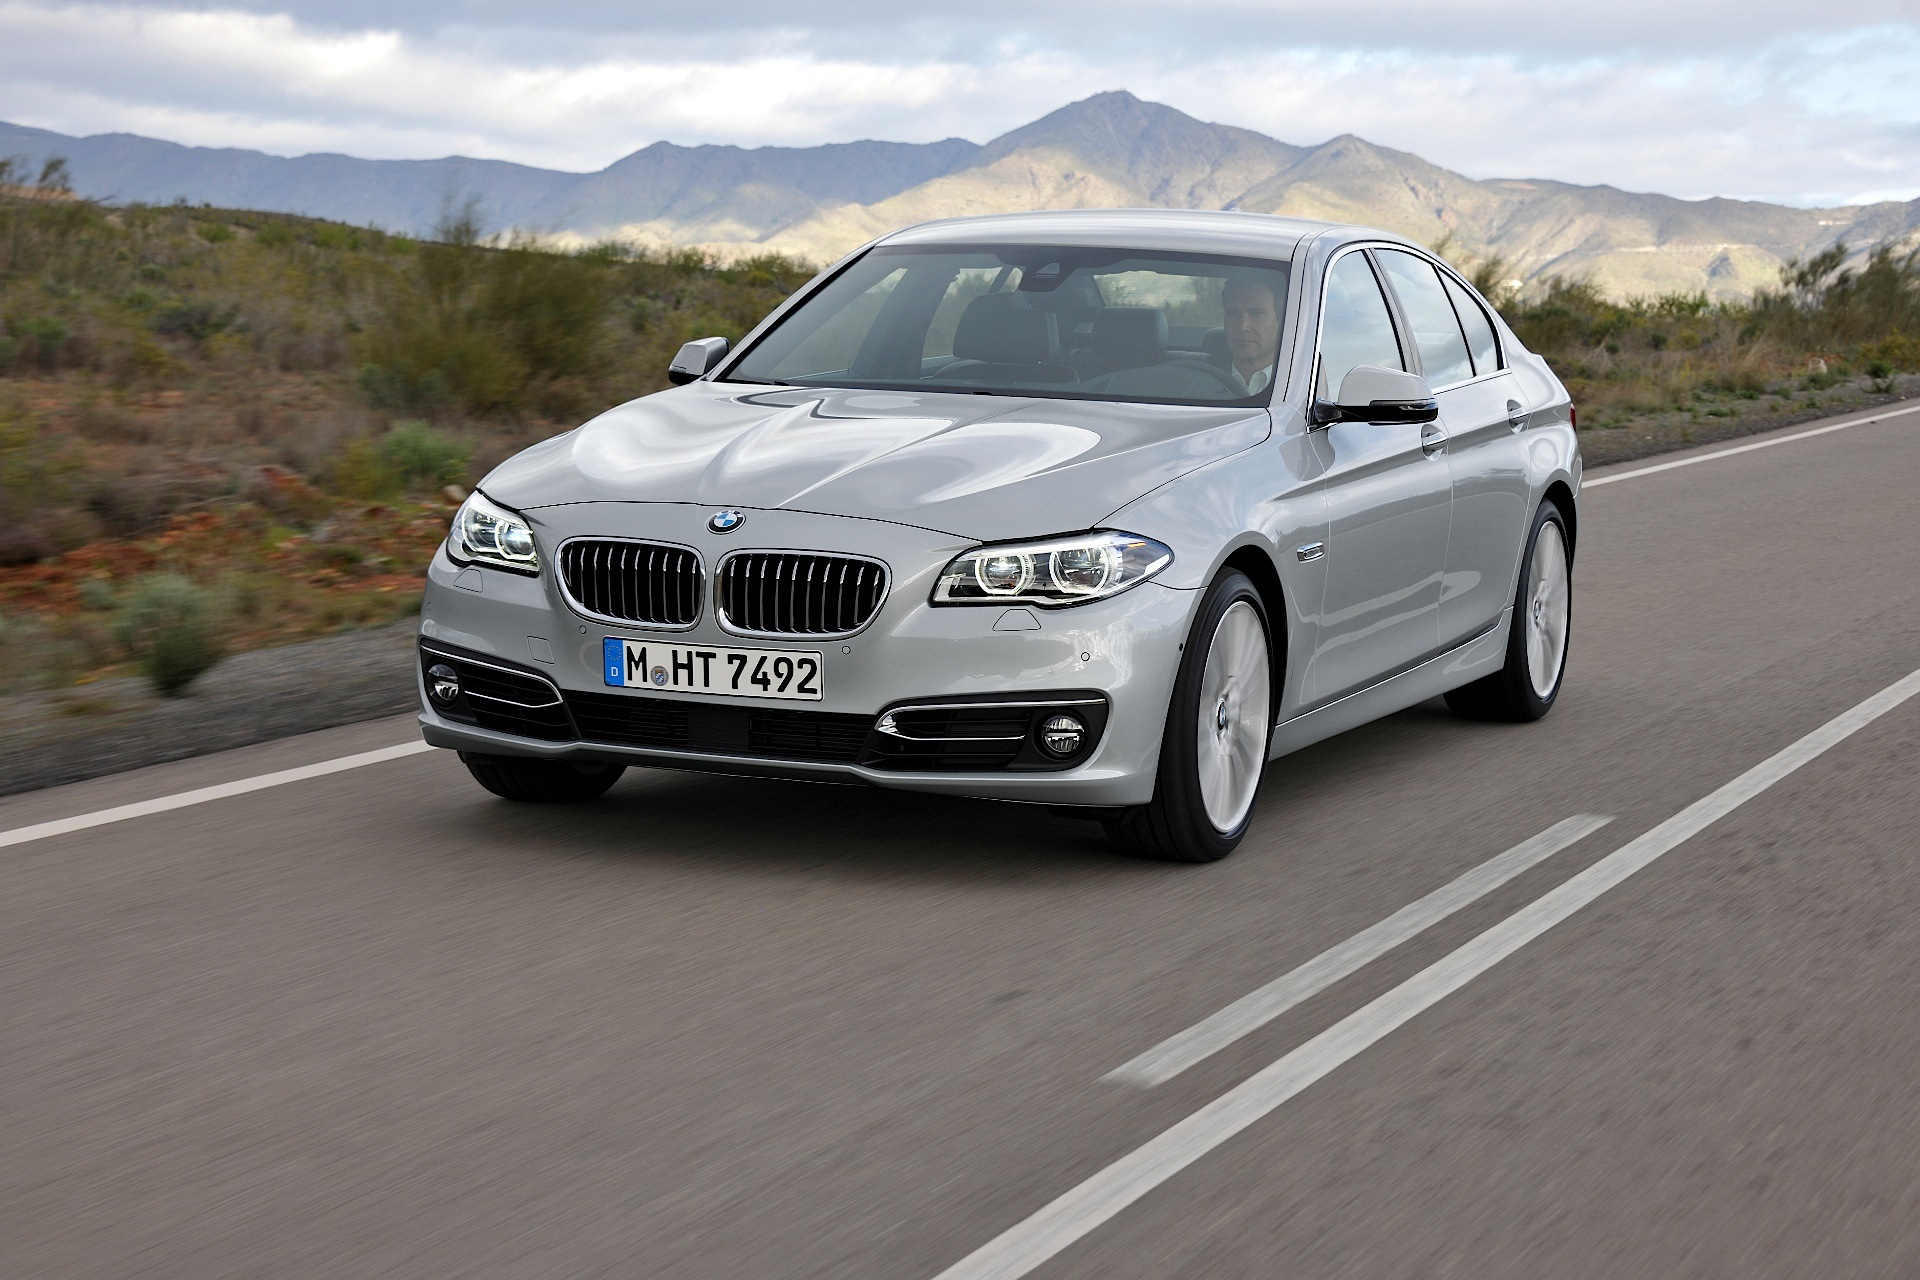 bmw 5 series f10 lci specs 2013 2014 2015 2016 autoevolution. Black Bedroom Furniture Sets. Home Design Ideas